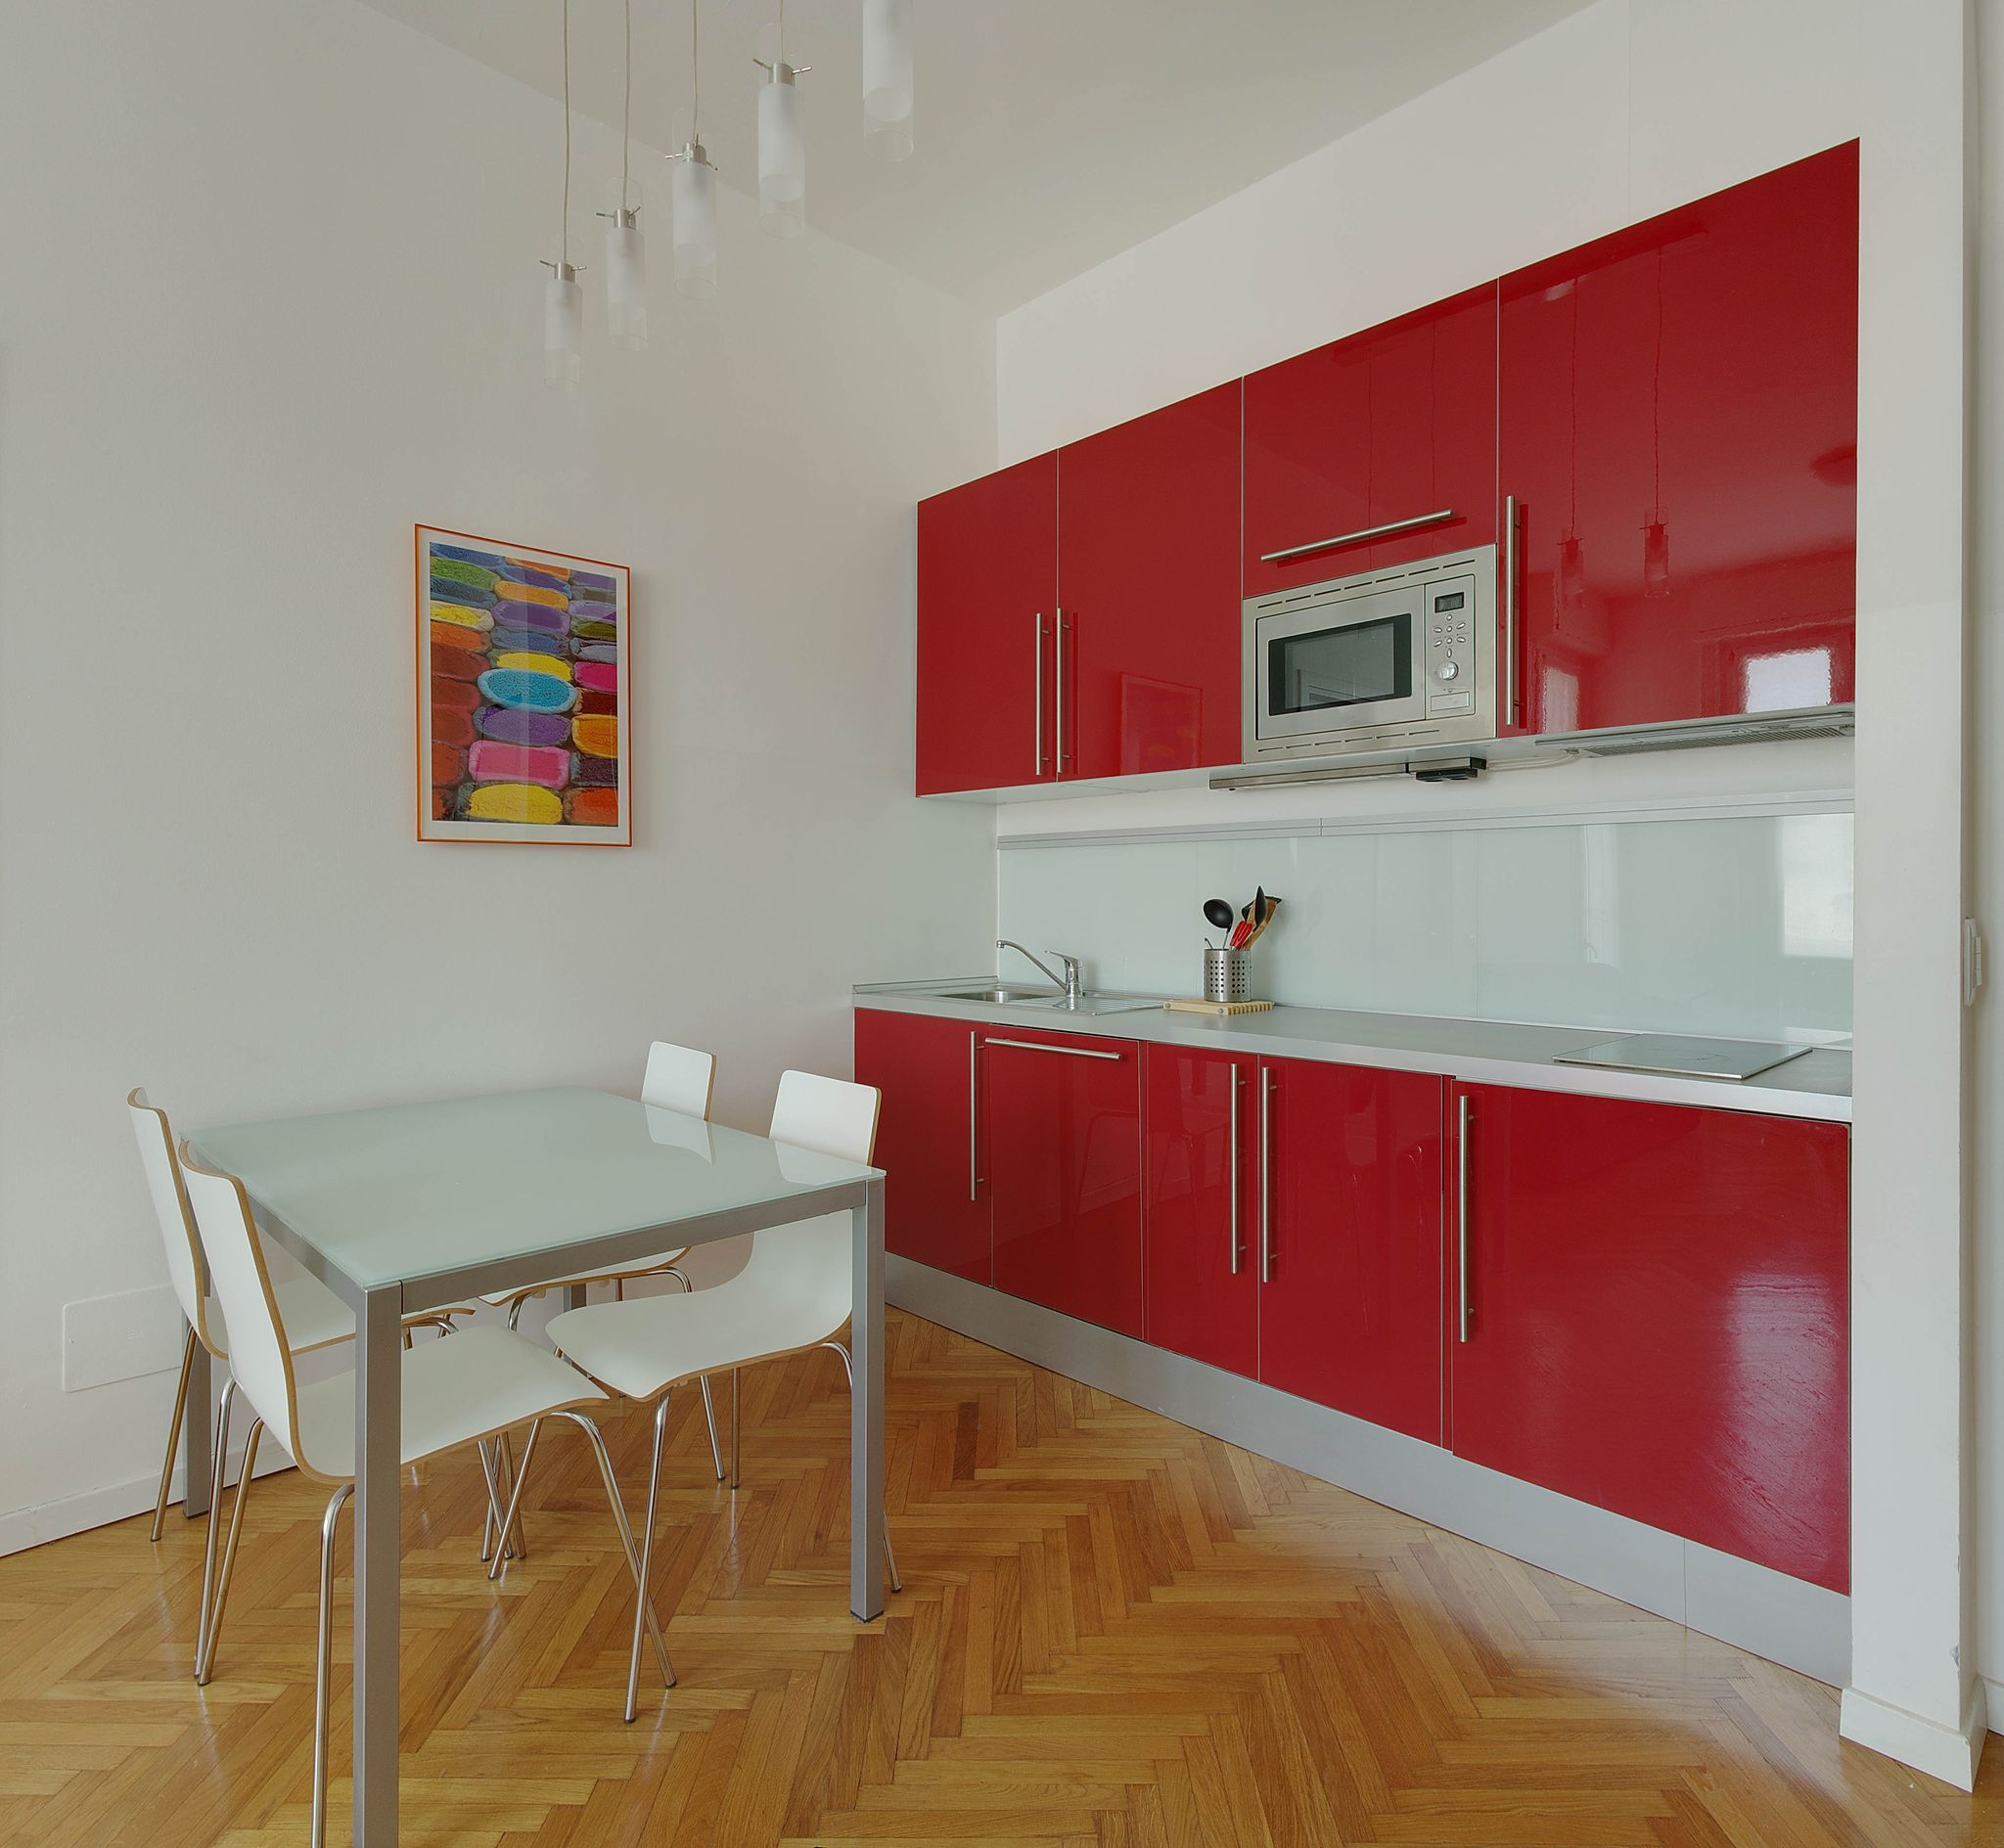 Rent Studio Apartments: Milan Italy Find And Book Holiday Homes Vacation